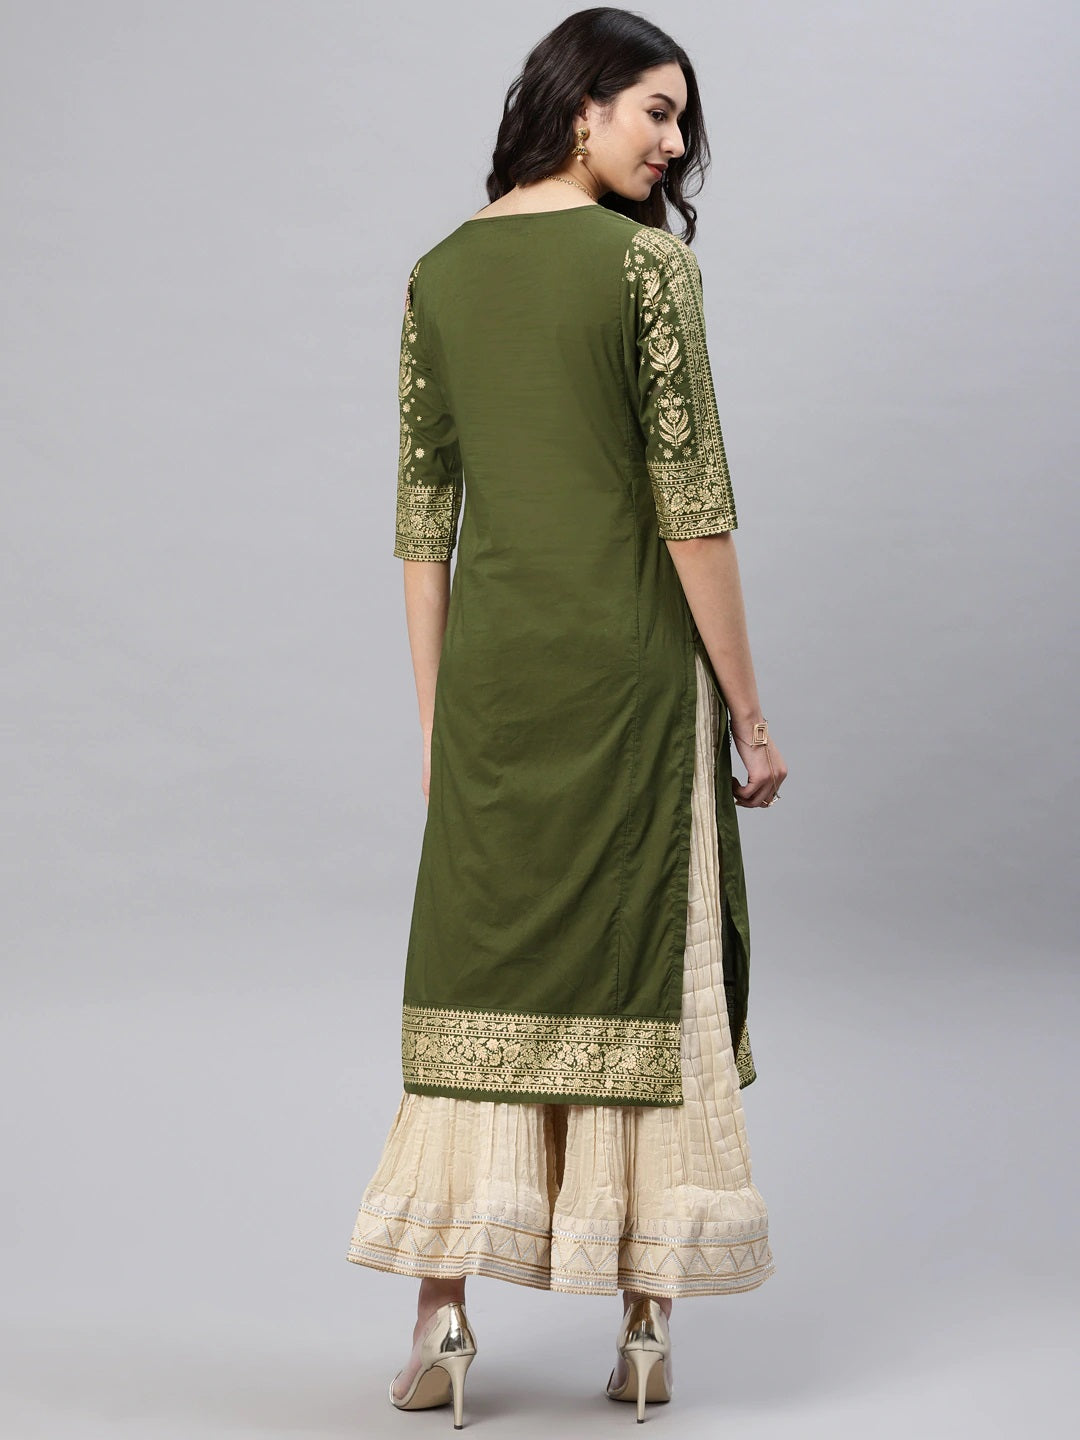 Olive Green & Golden Solid Straight Kurta (Top Only)